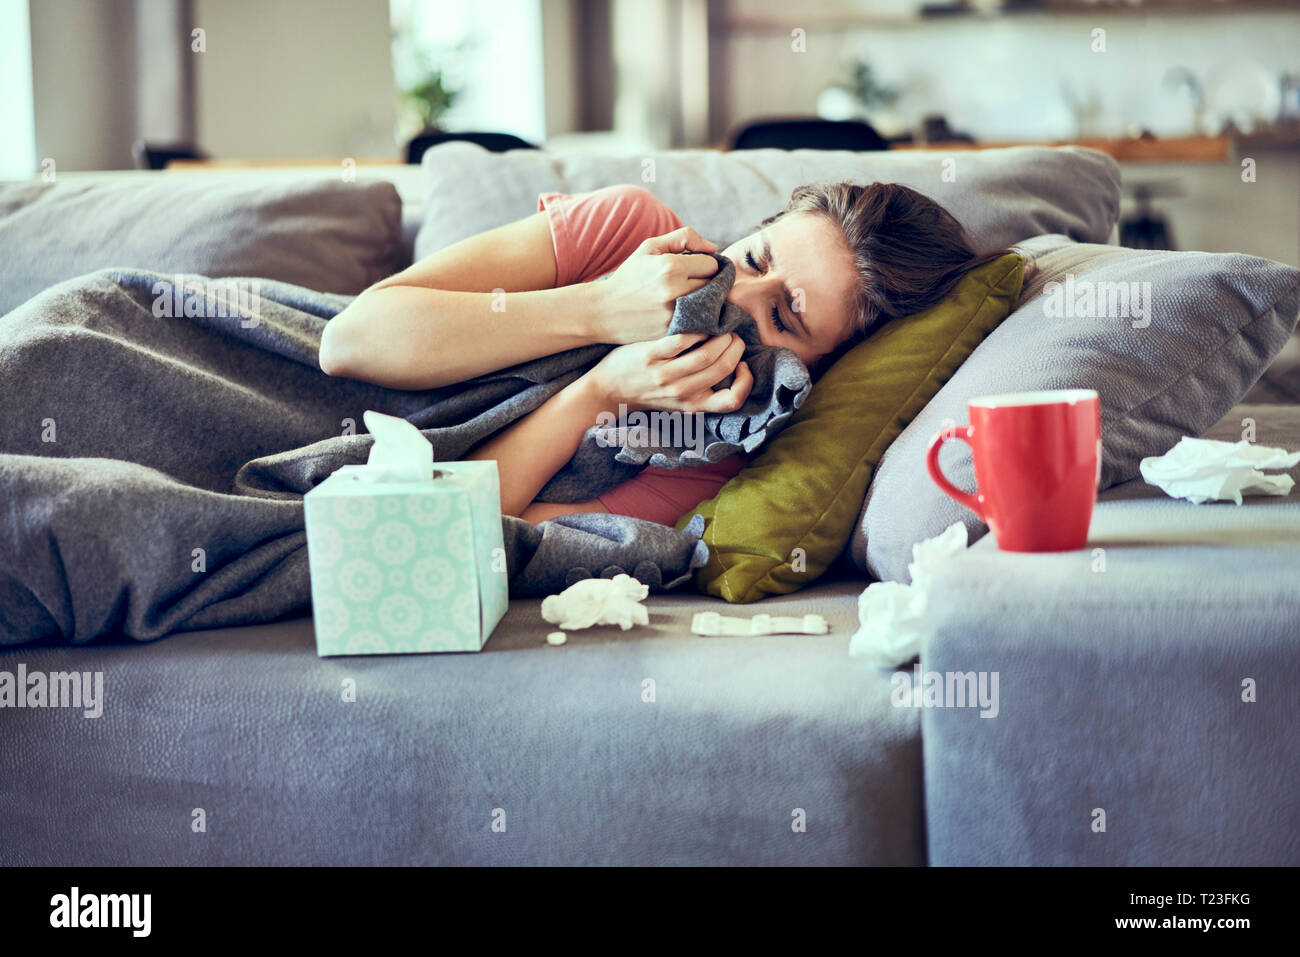 Sick woman trying to take a nap while lying on couch covered in blanket - Stock Image